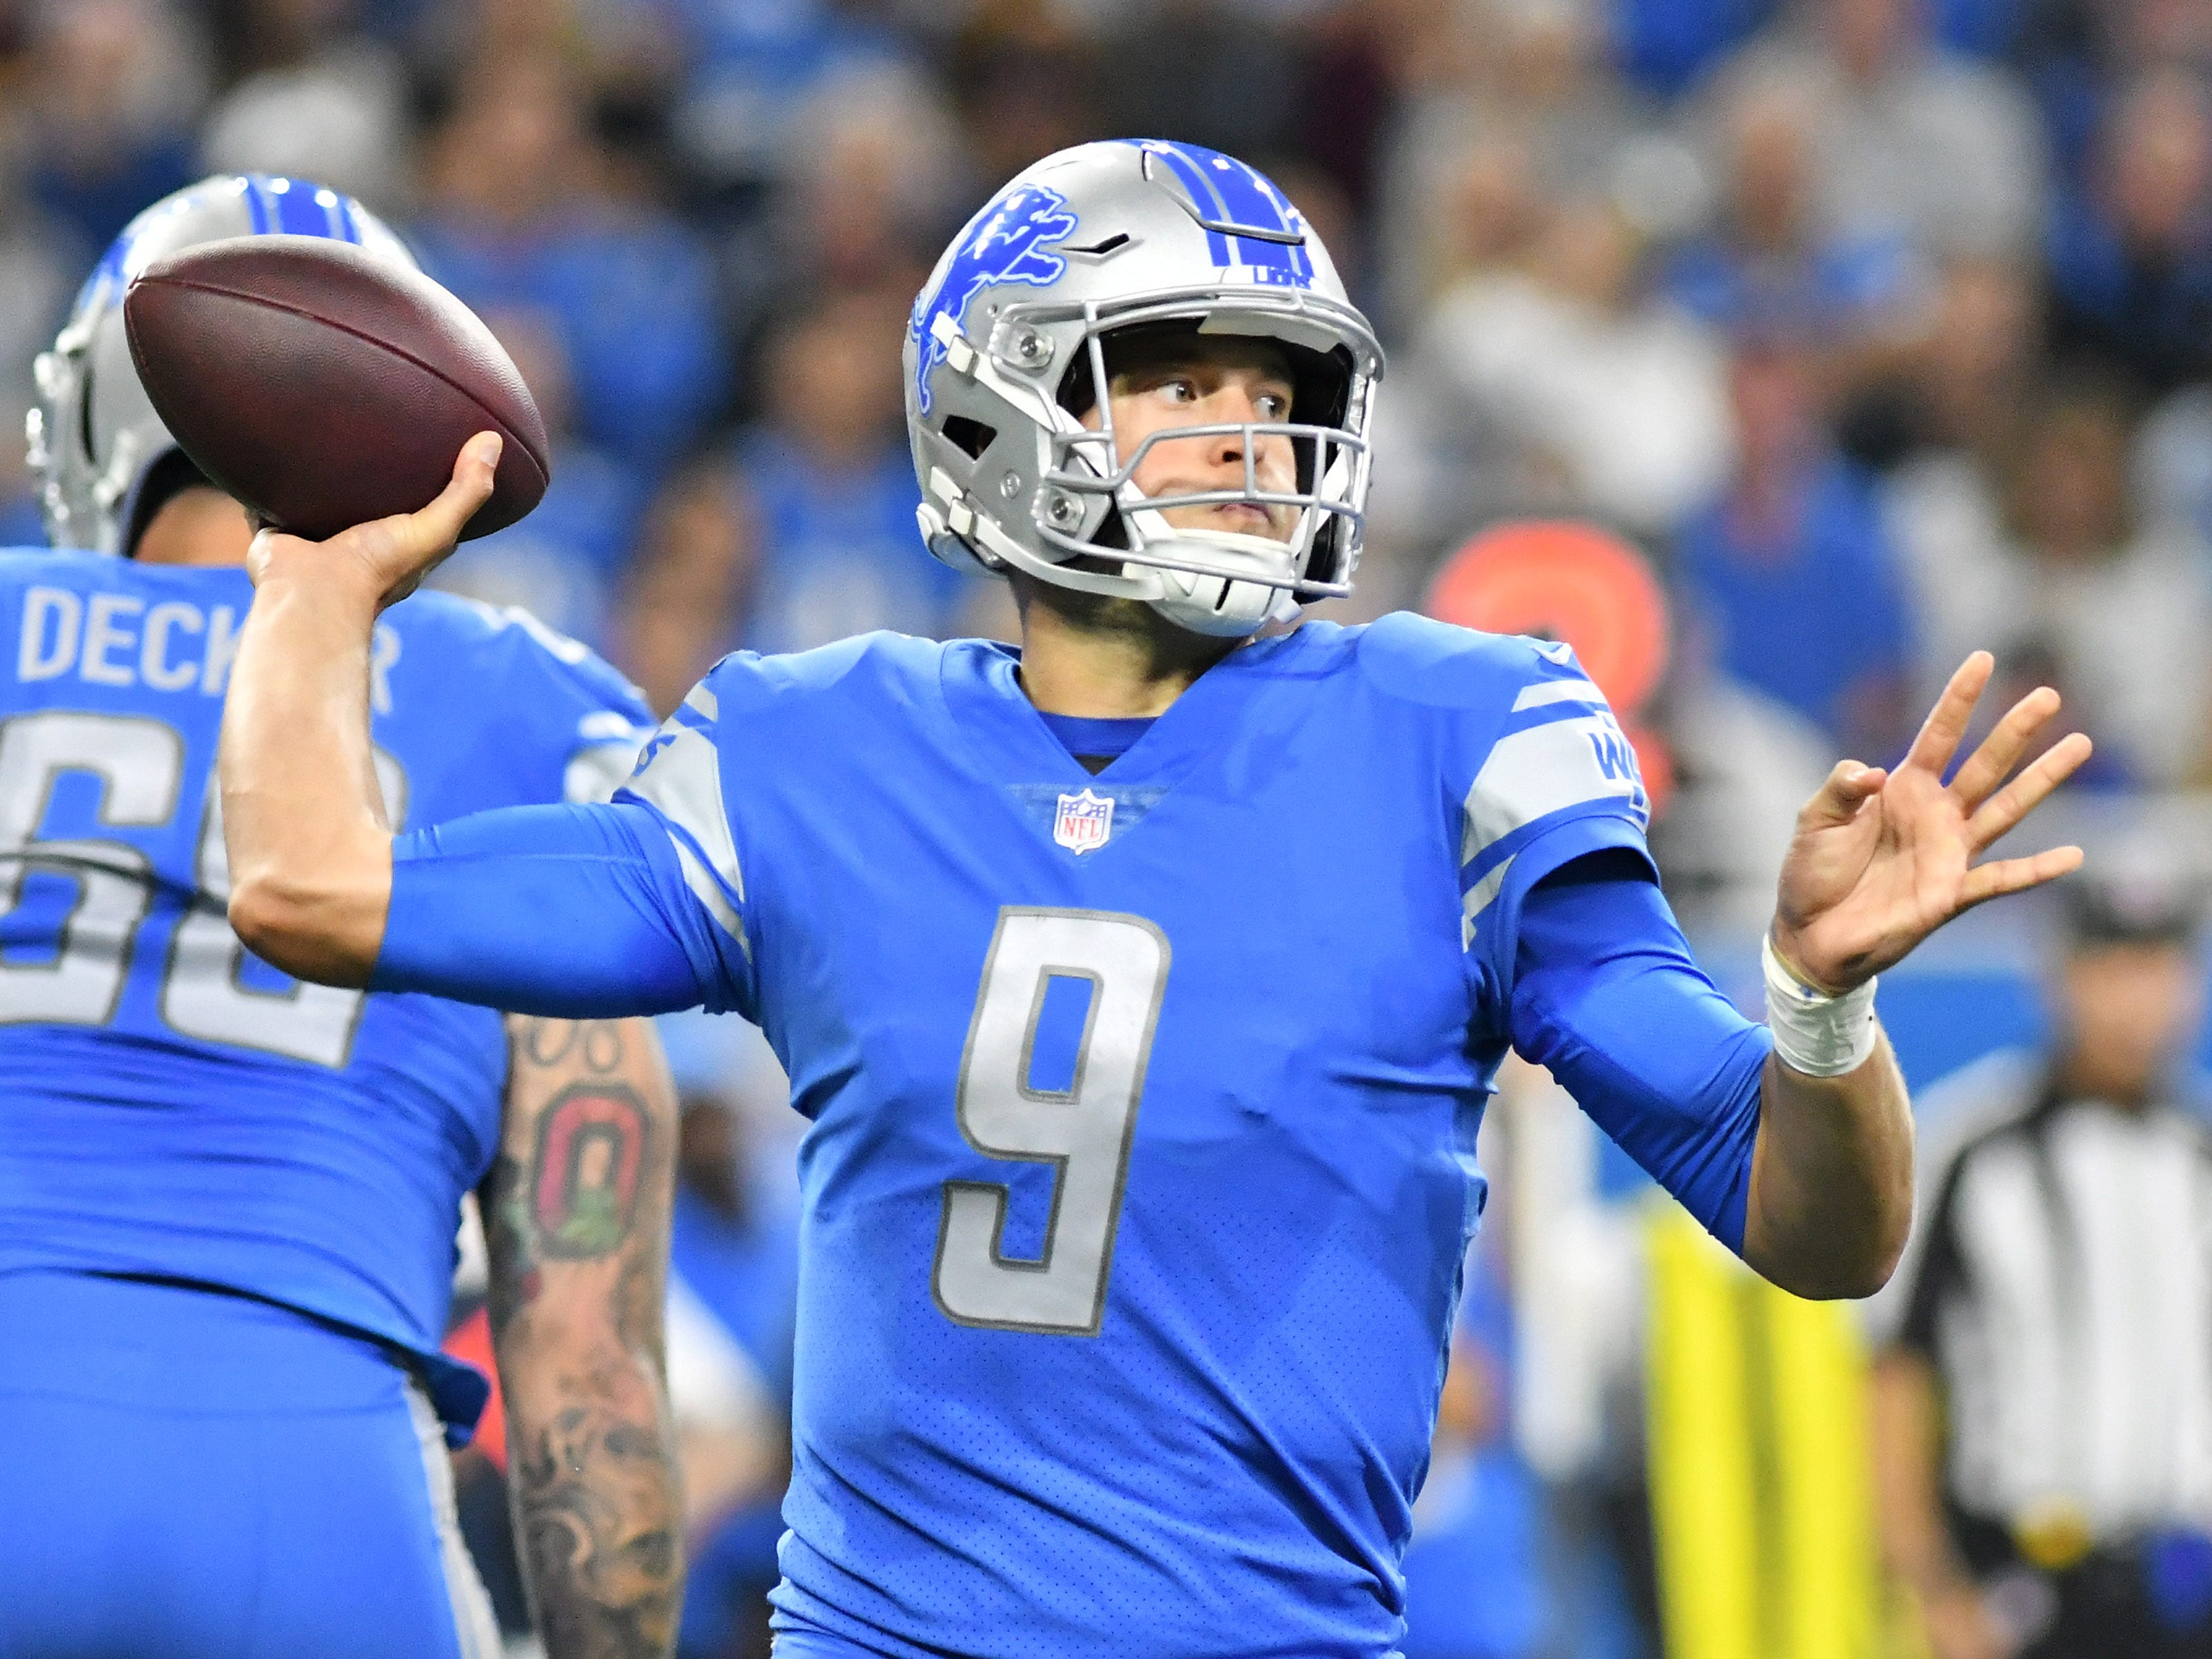 Lions quarterback Matthew Stafford passes the ball in the second quarter.